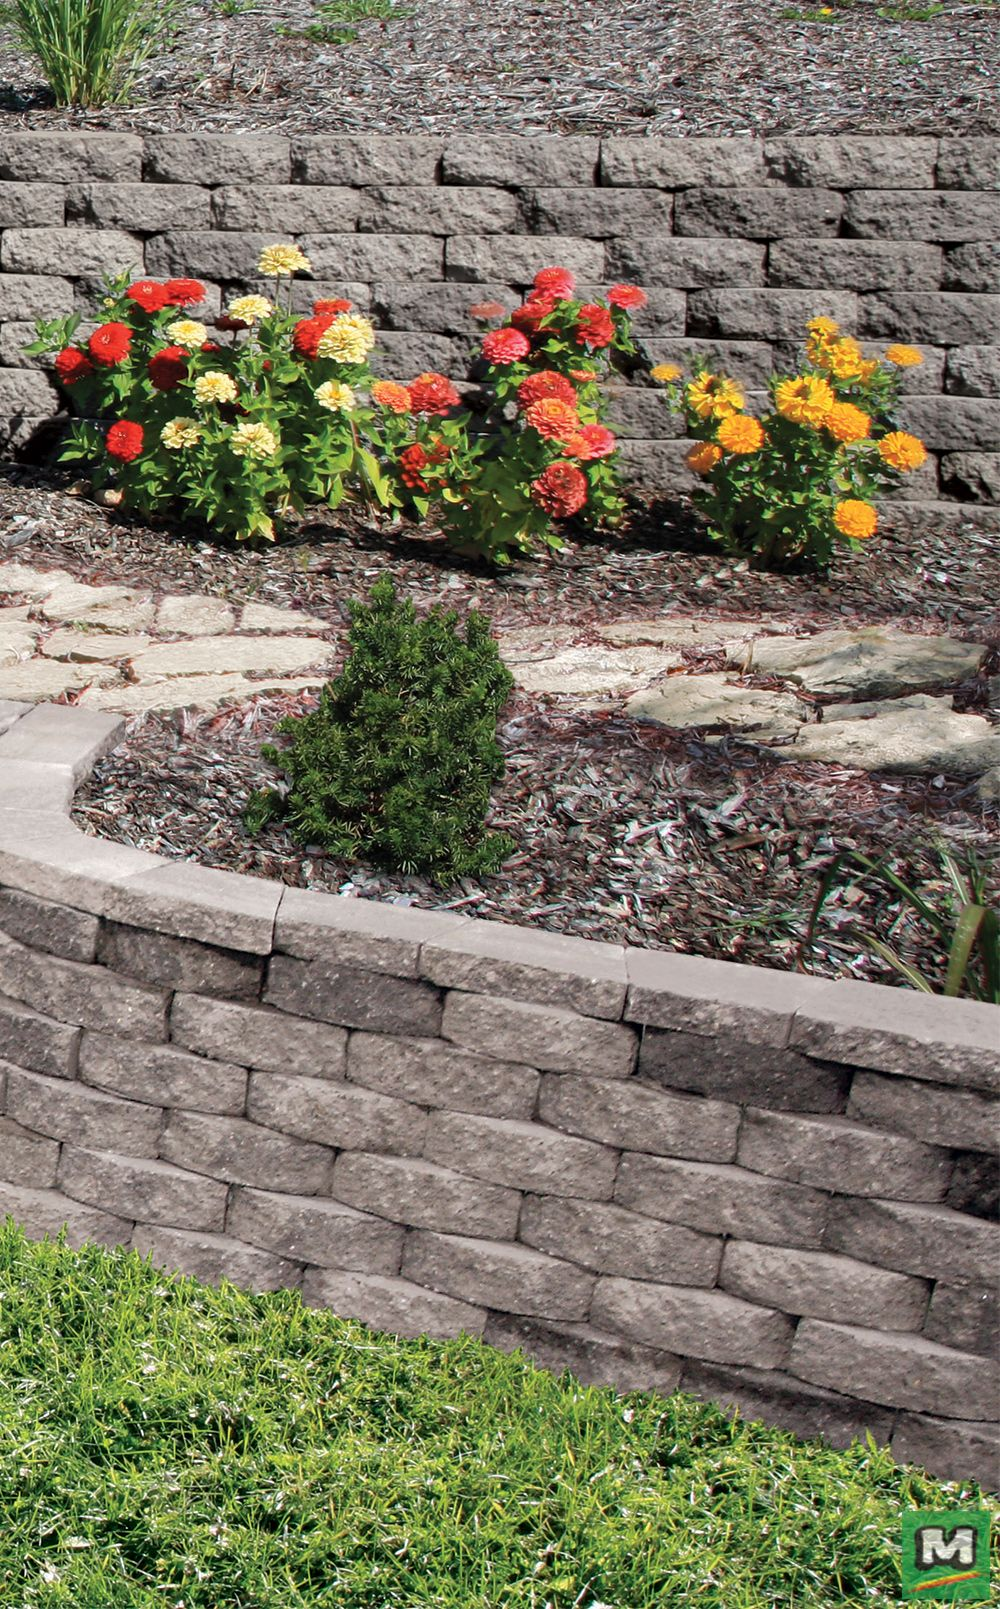 Upgrade Your Landscape With This Crestone Beveled Wall Block They Feature A Back Lip For Alignment And Landscaping Inspiration Landscaping Supplies Landscape